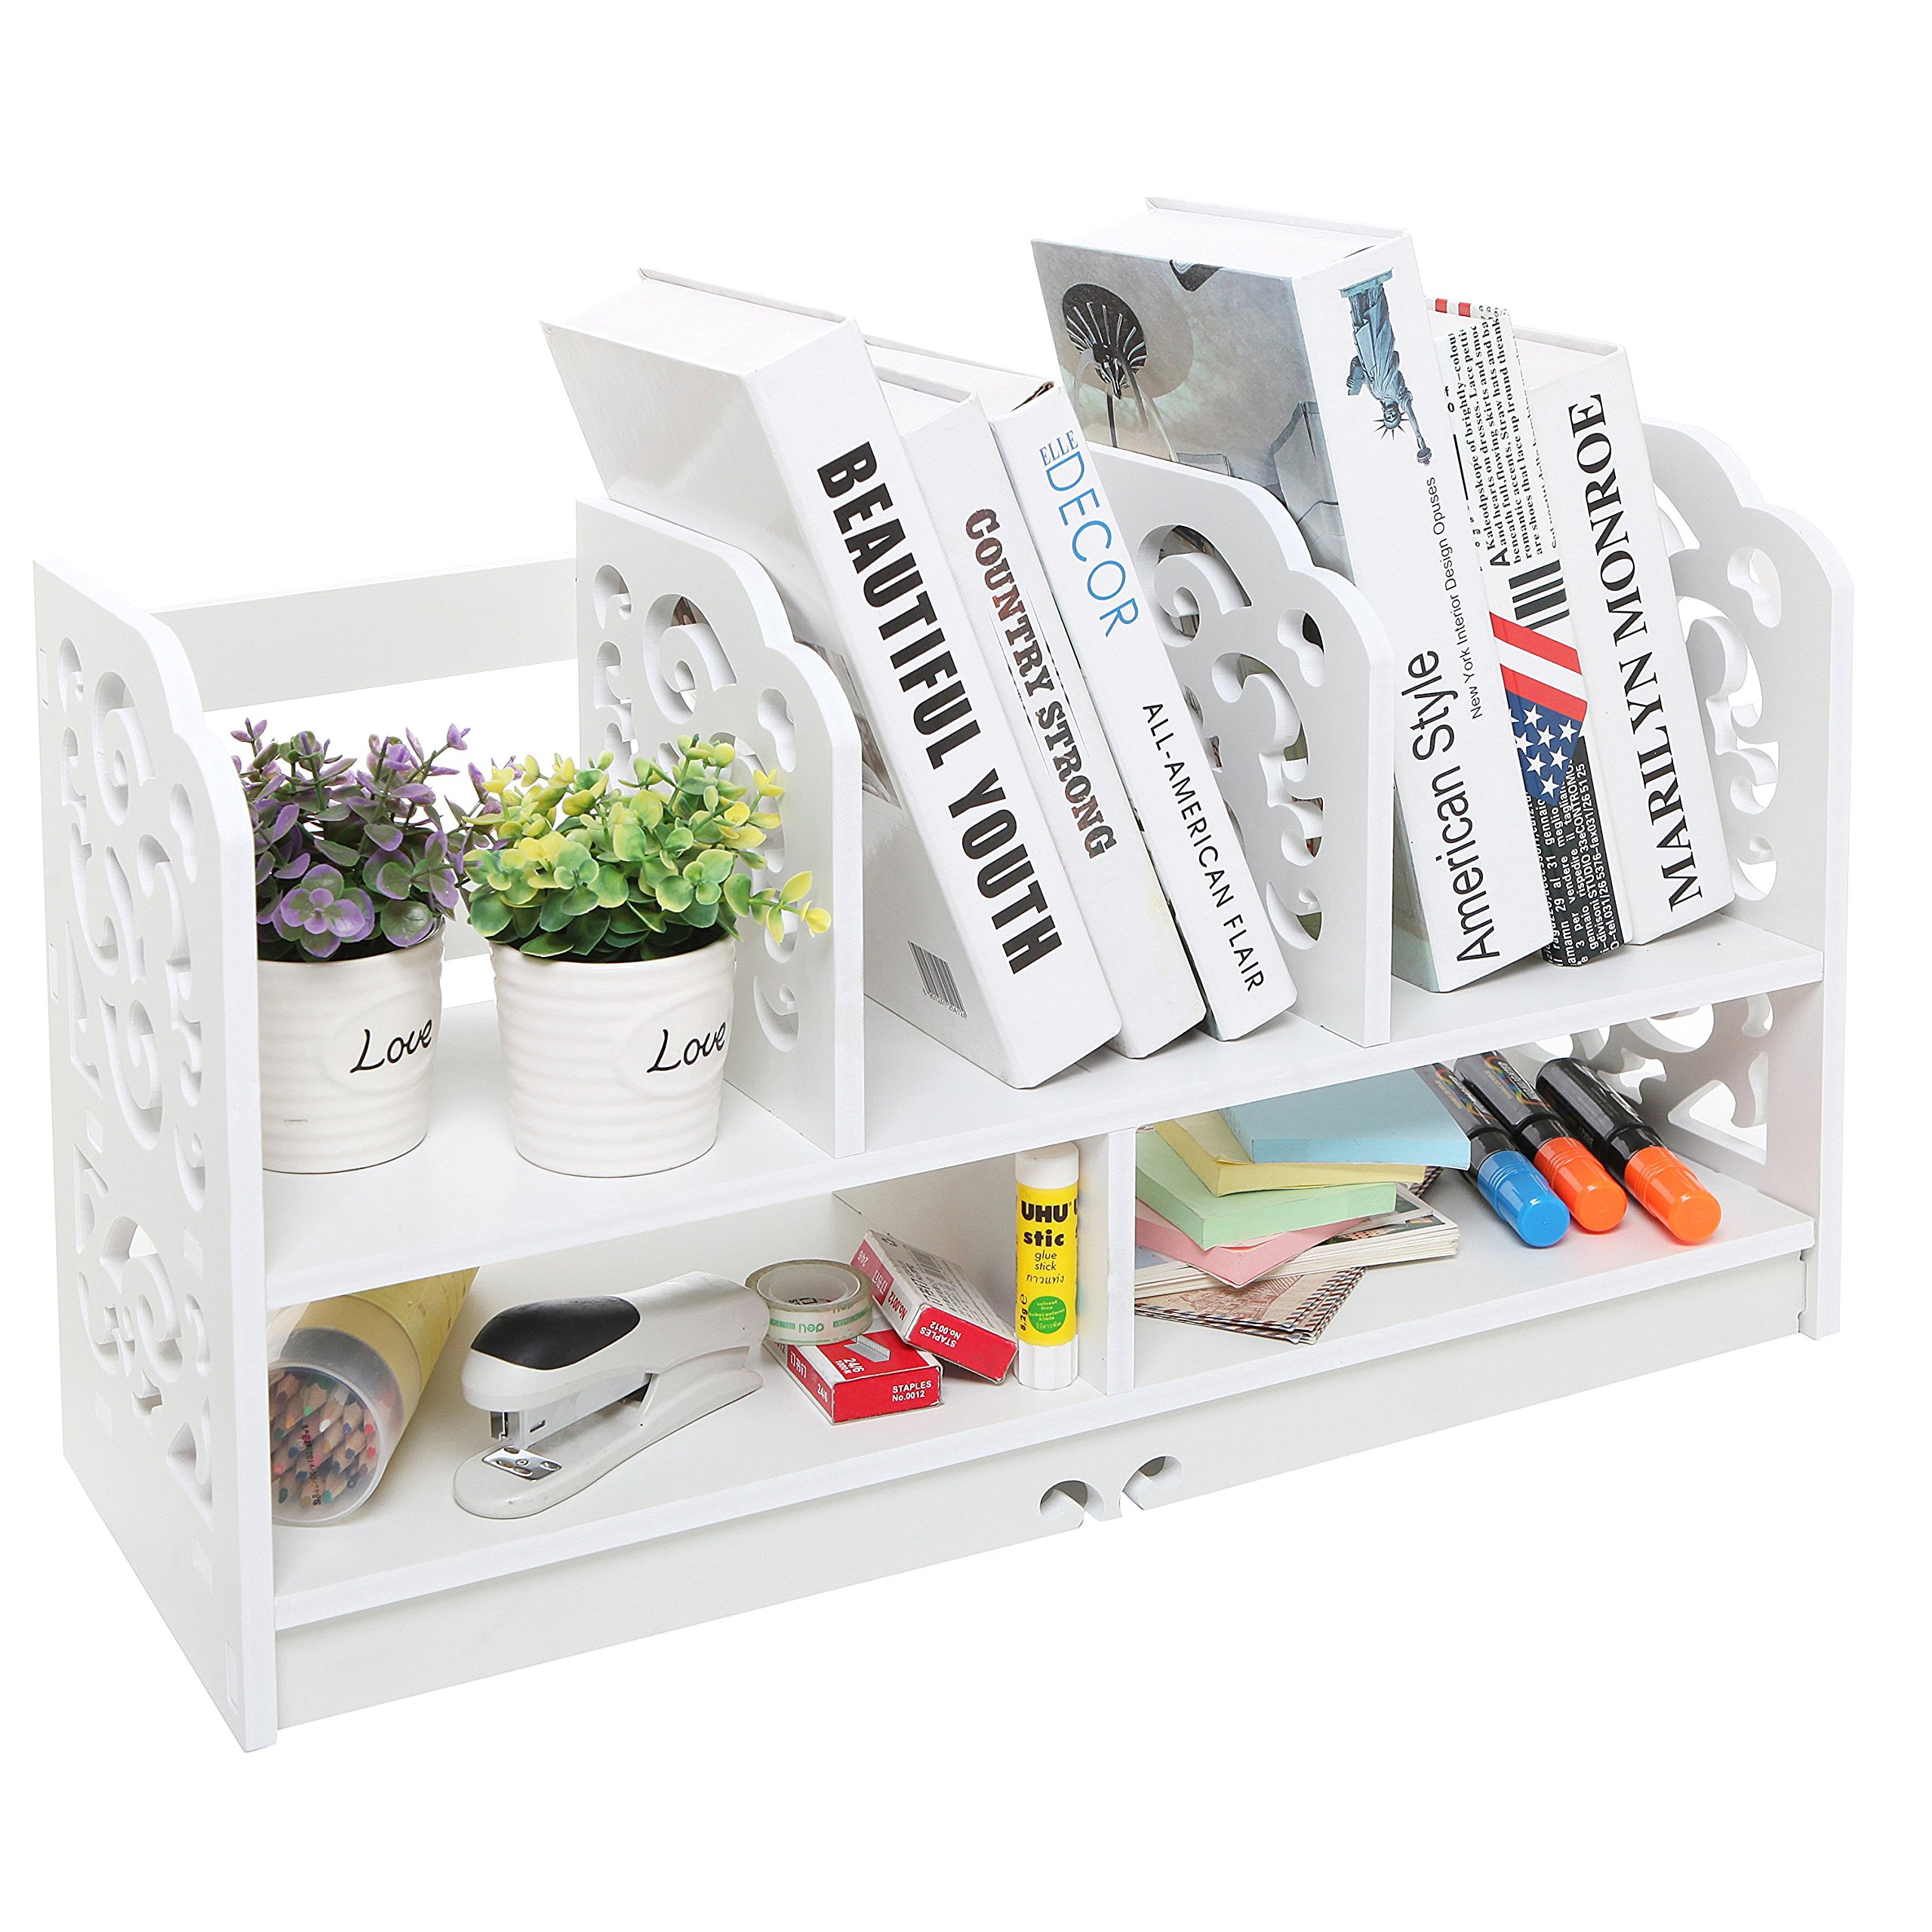 MyGift 23 Inch Freestanding Book Case, 5 Compartments Decorative Display Shelf Rack, White by MyGift